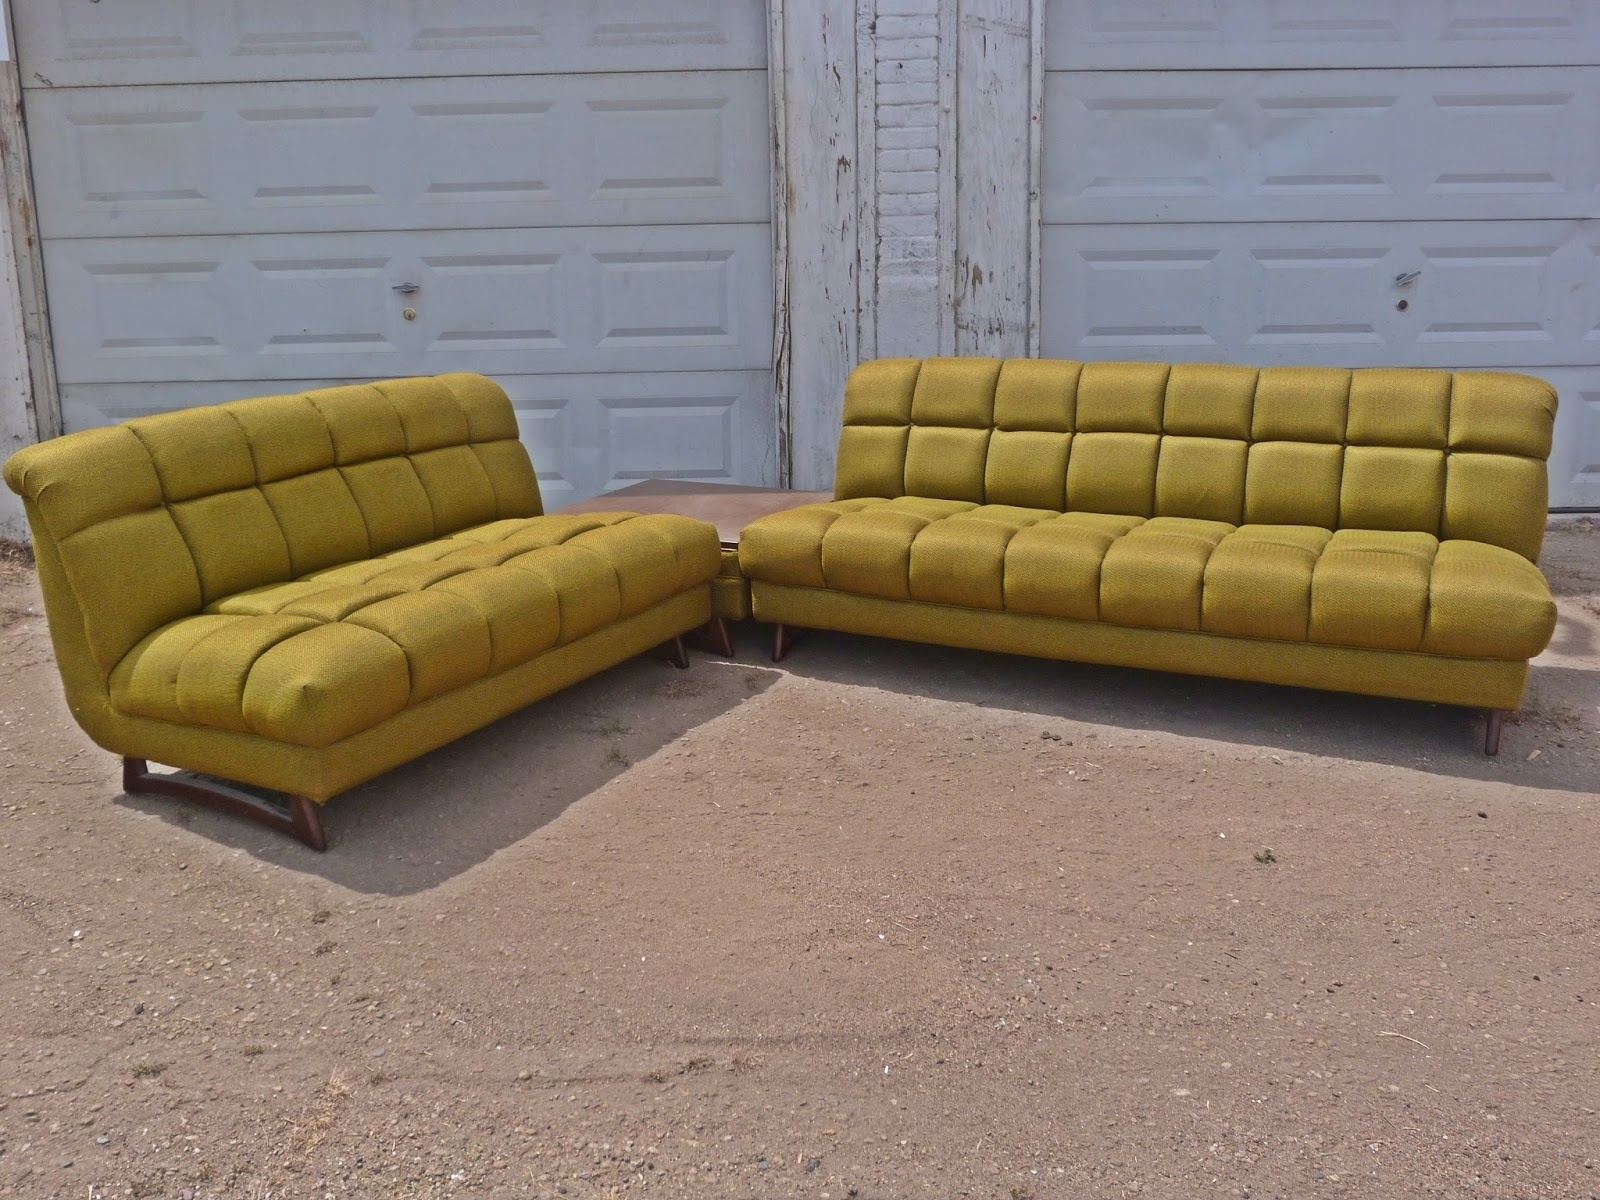 Vintage Sectional Sofa 20 With Vintage Sectional Sofa | Jinanhongyu In Vintage Sectional Sofas (Image 9 of 10)